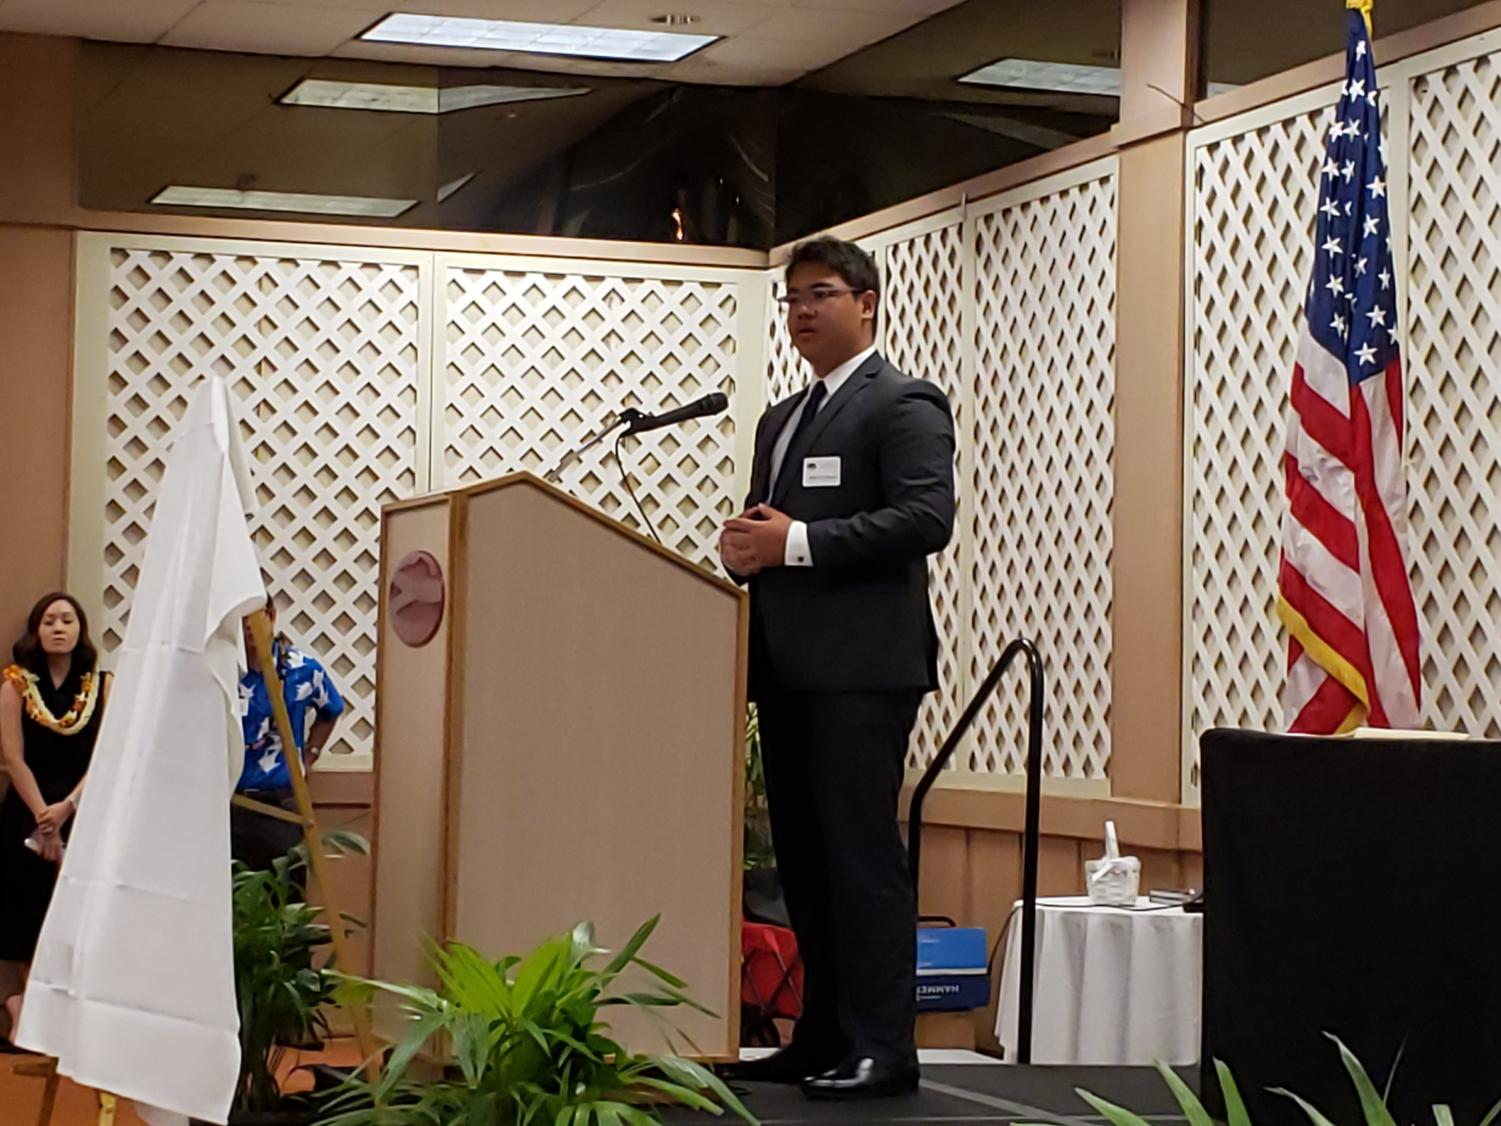 Waipahu High School journalist, Kawika Pegram, spoke at the 2019 Hawaii High School Journalism Awards Banquet.